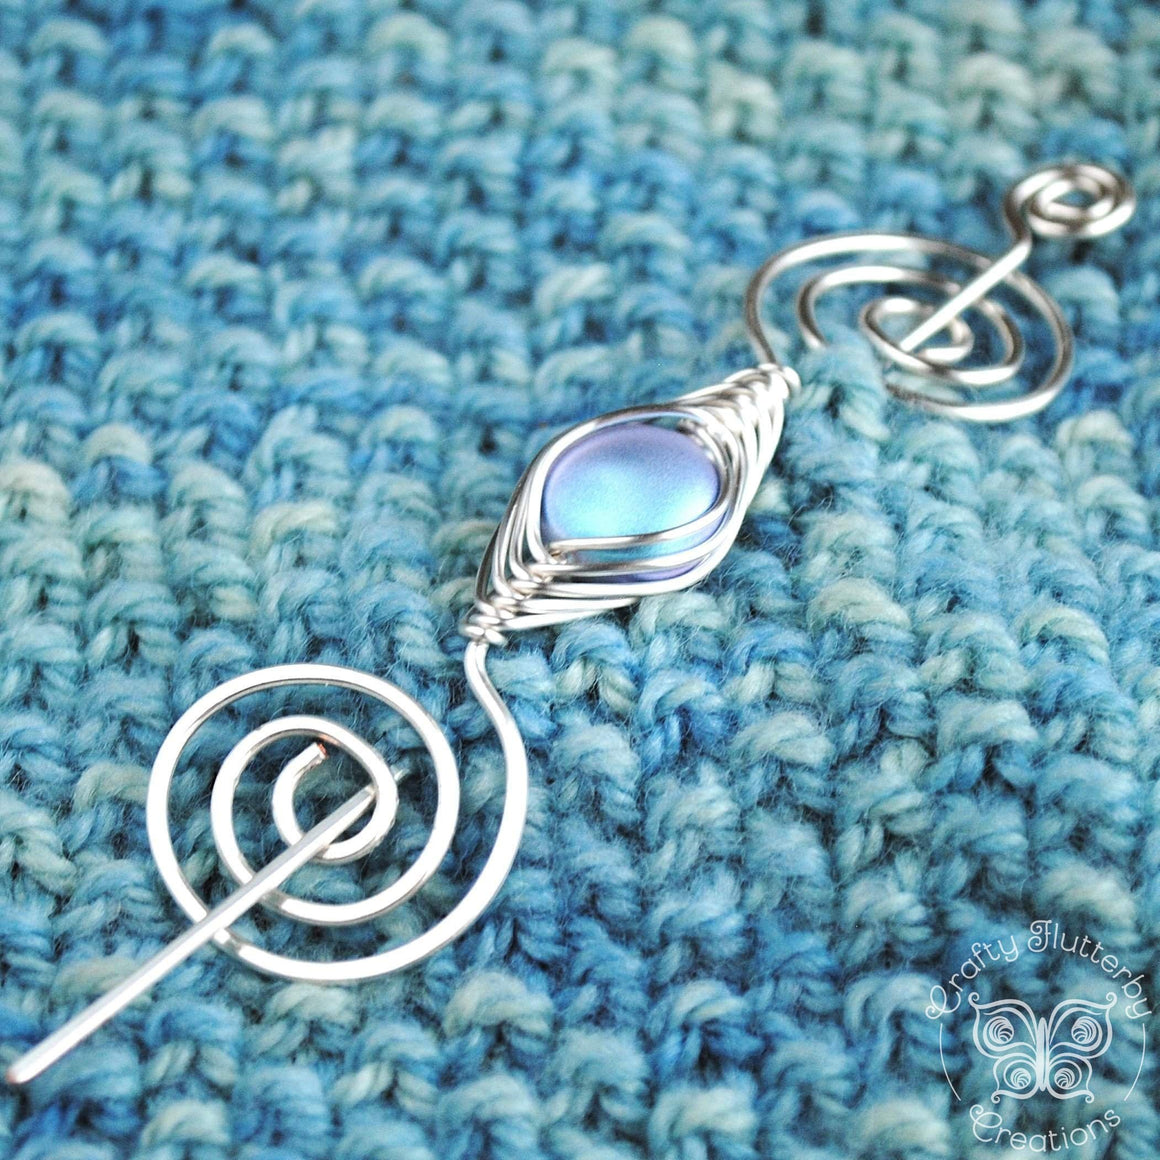 Shawl Pin, Aqua Lilac Shimmer Shawl Pin - Noteworthy Classic - Crafty Flutterby Creations